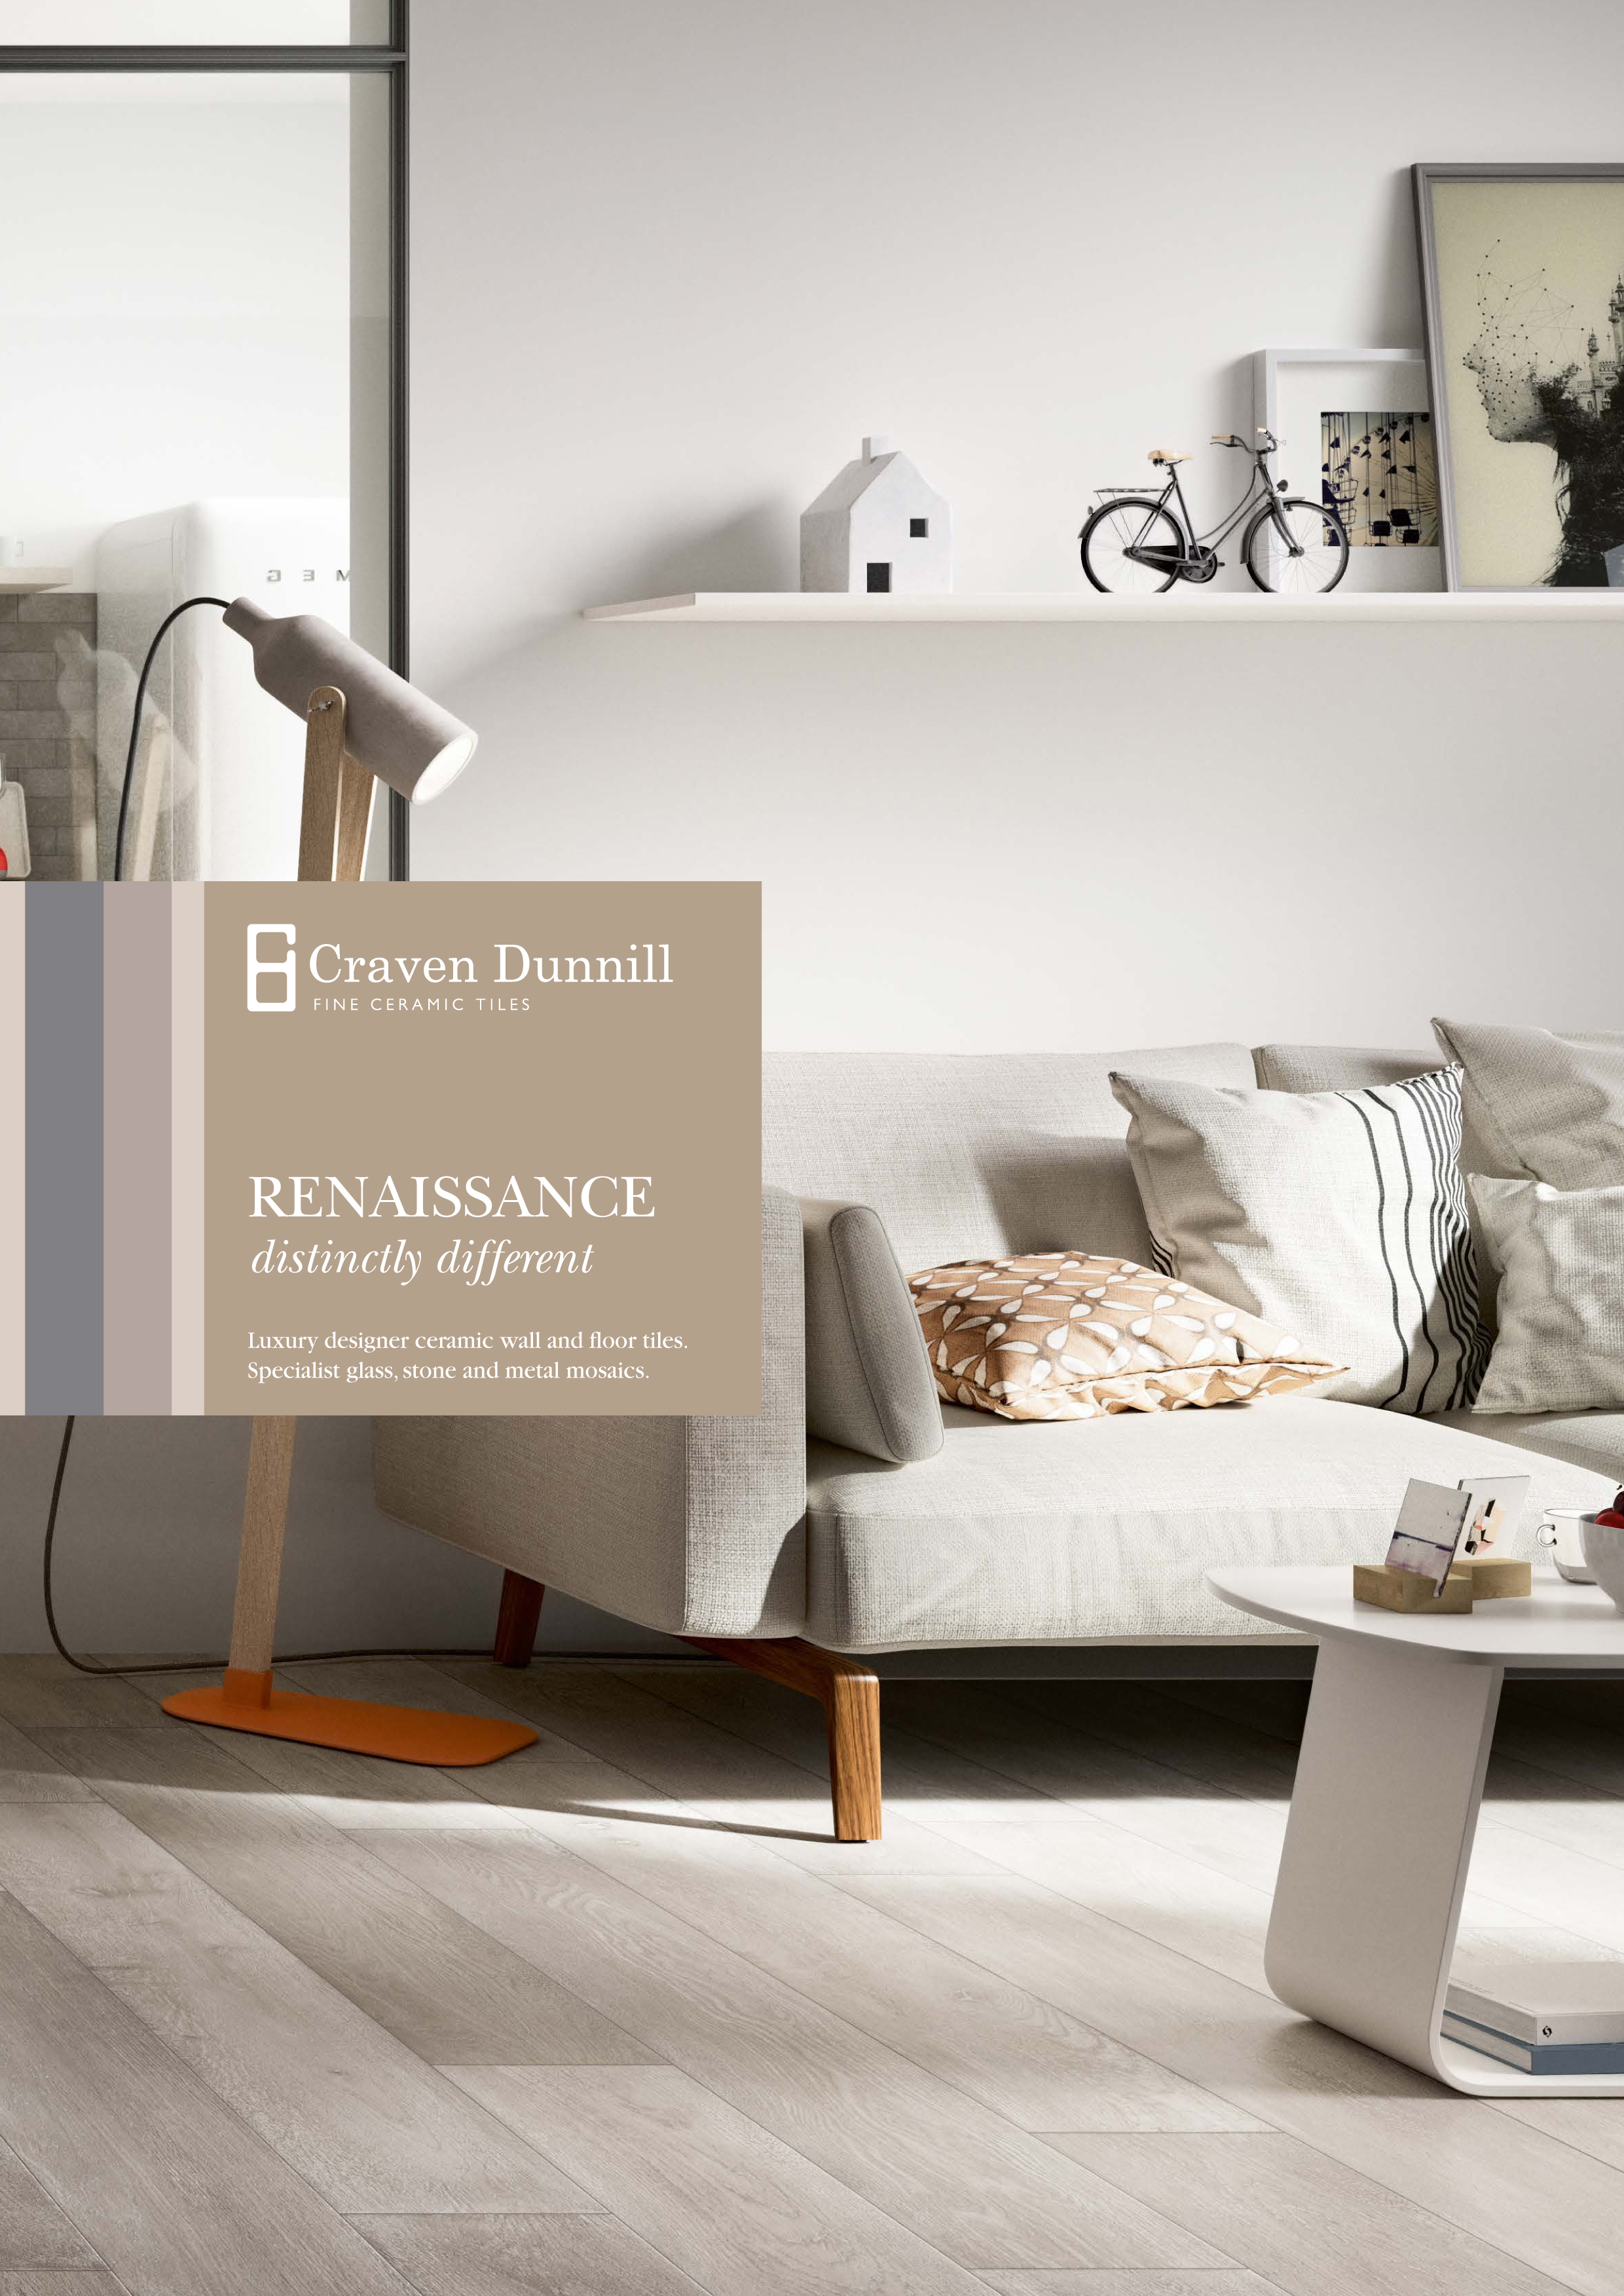 Craven dunnill launches inspiring new catalogue featuring 136 pages and over 70 ranges of wall and floor tiles the catalogue is a visually enticing reference for any would be tile purchaser looking for dailygadgetfo Images